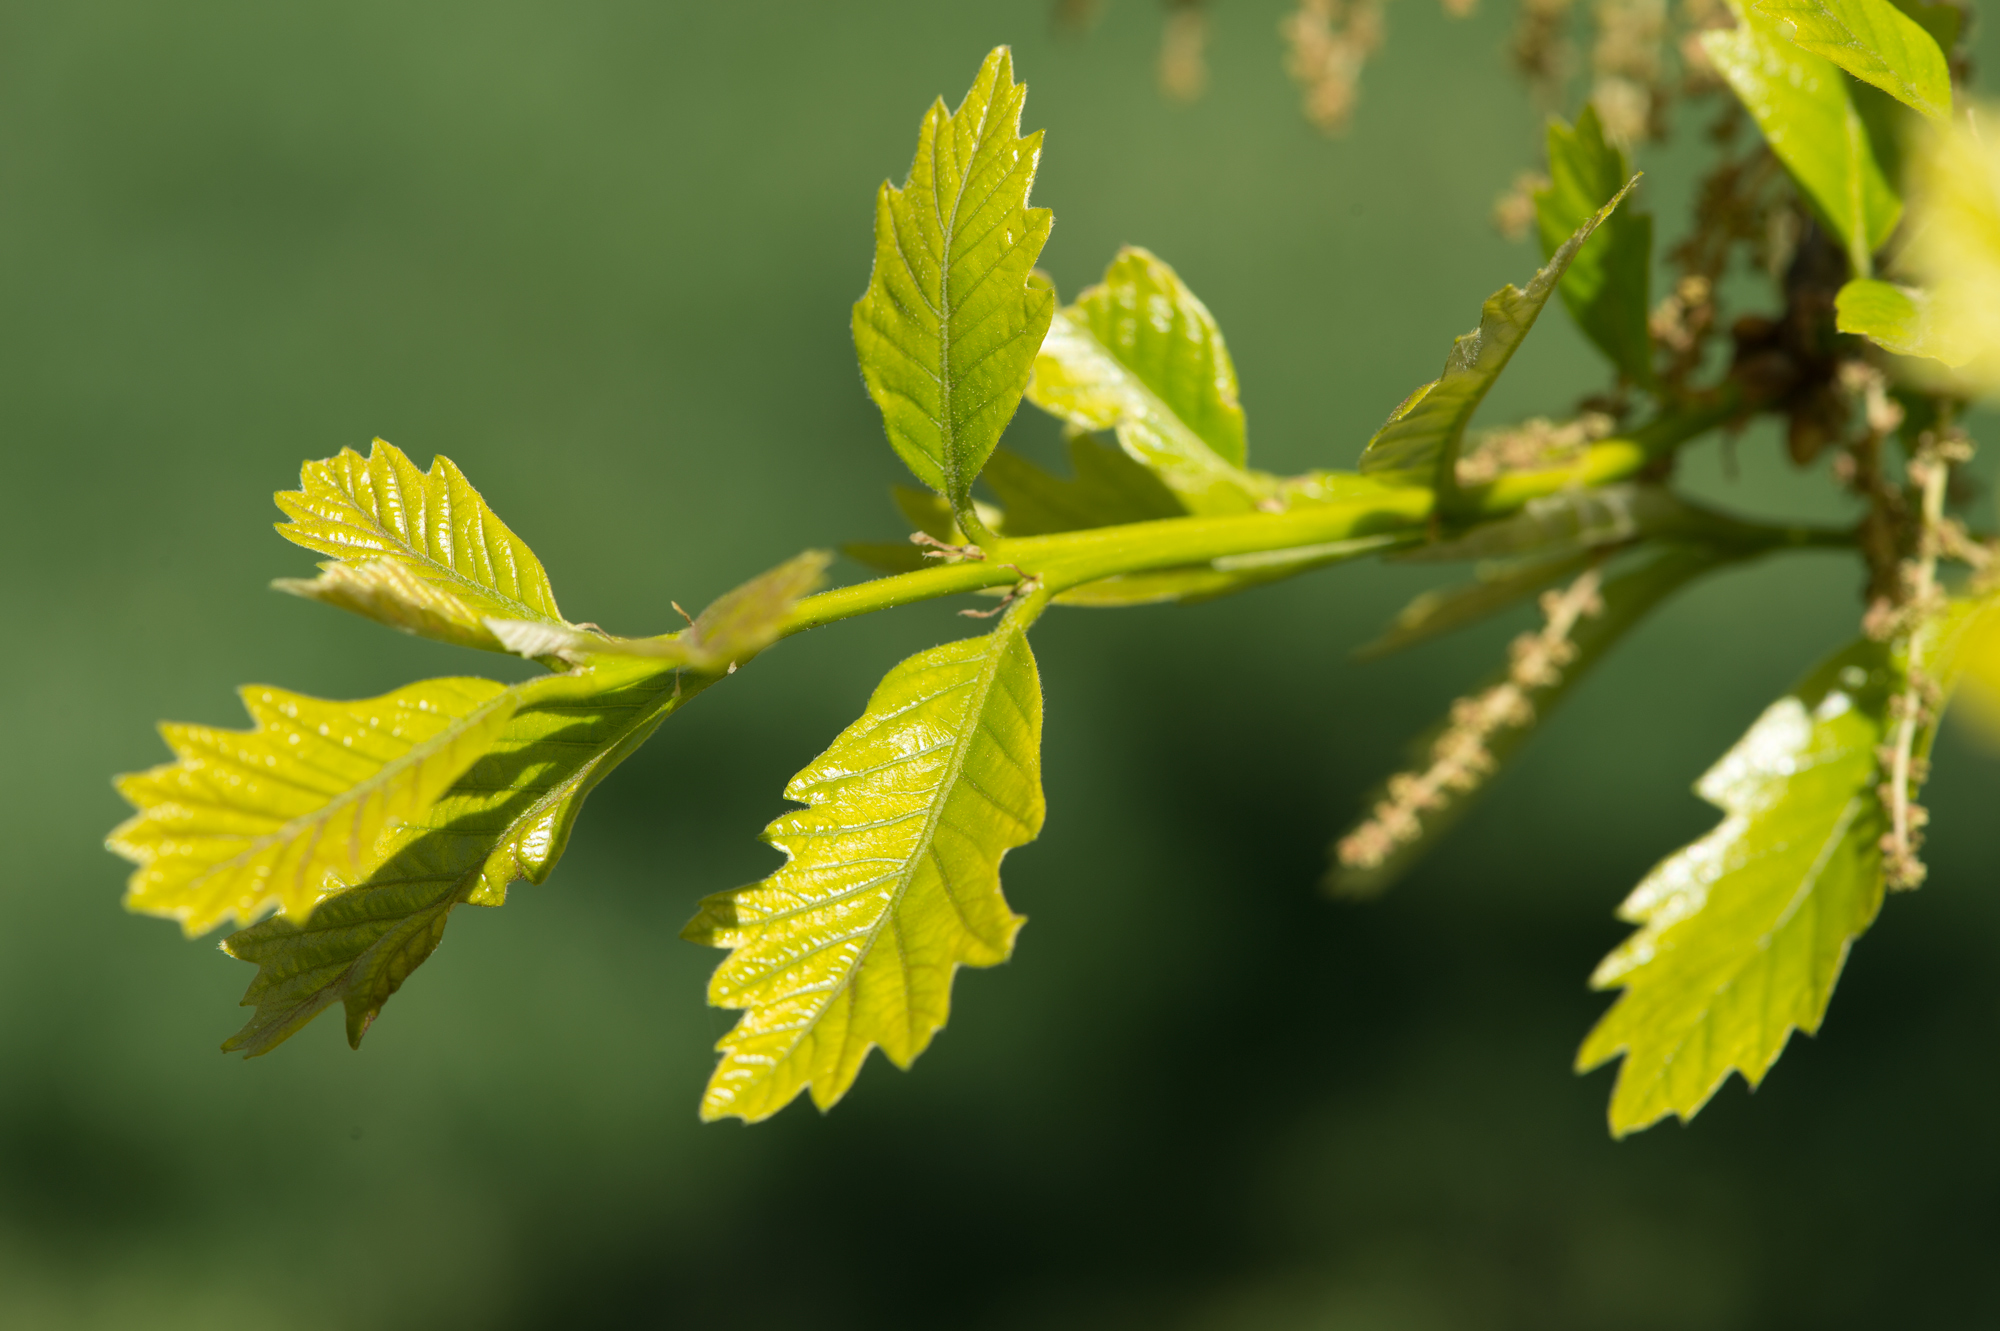 Up-close photo of the swamp white oak leafs.